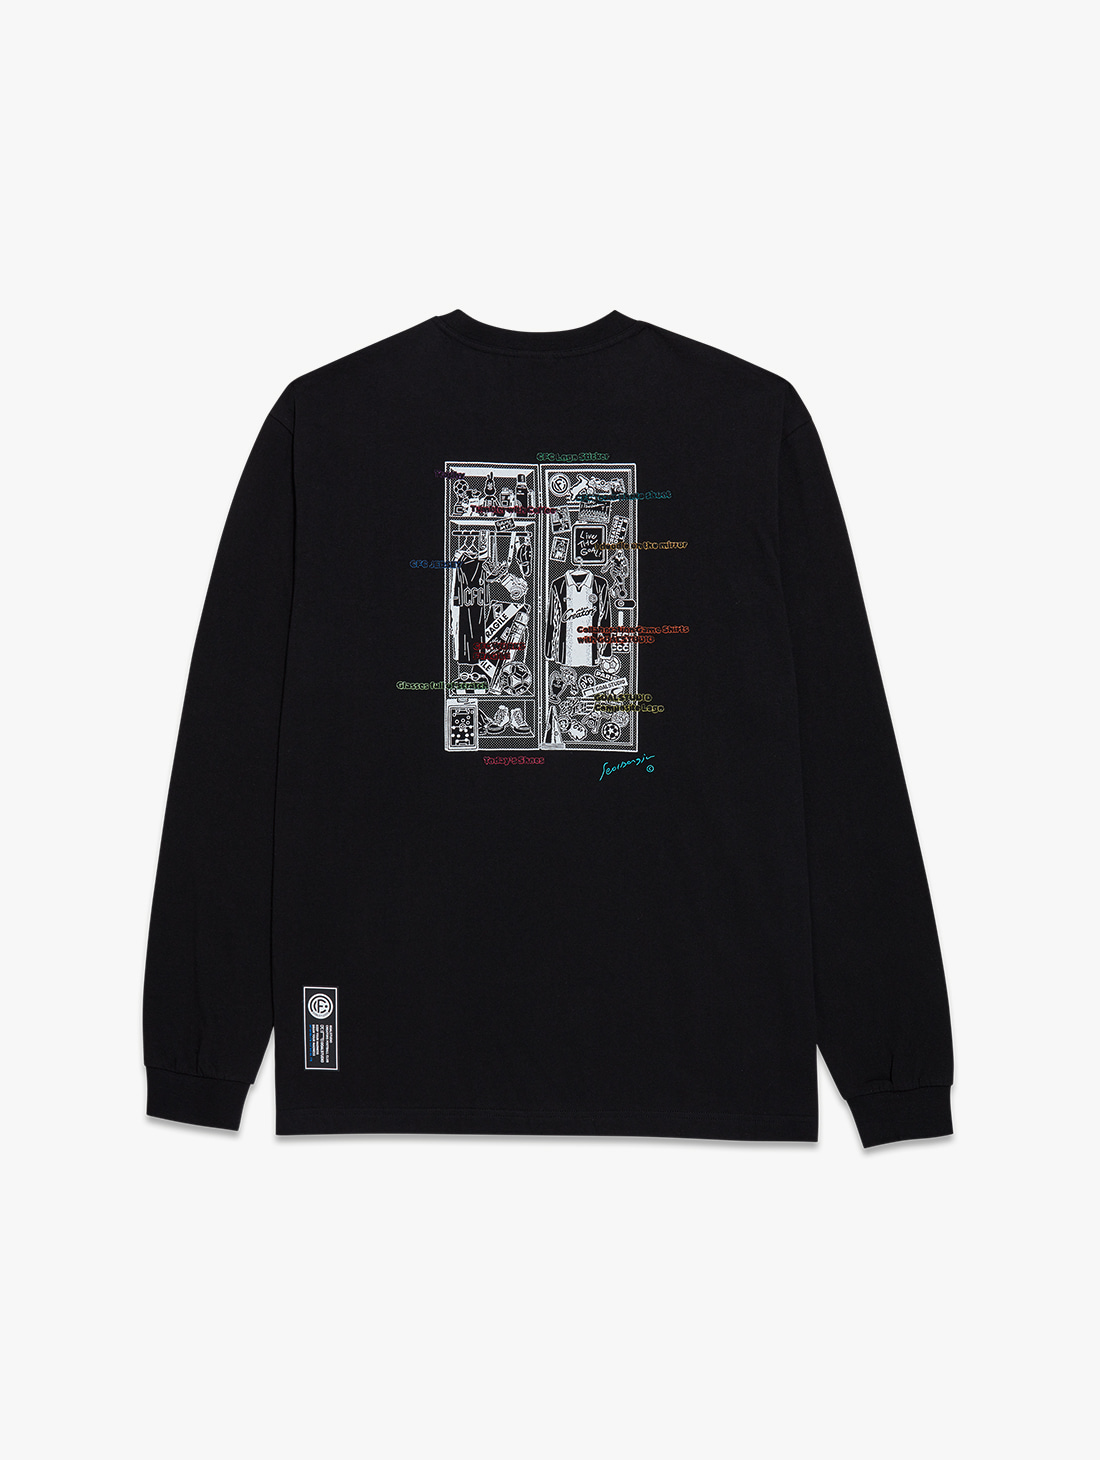 CFC LOCKER ROOM LONG SLEEVE TEE